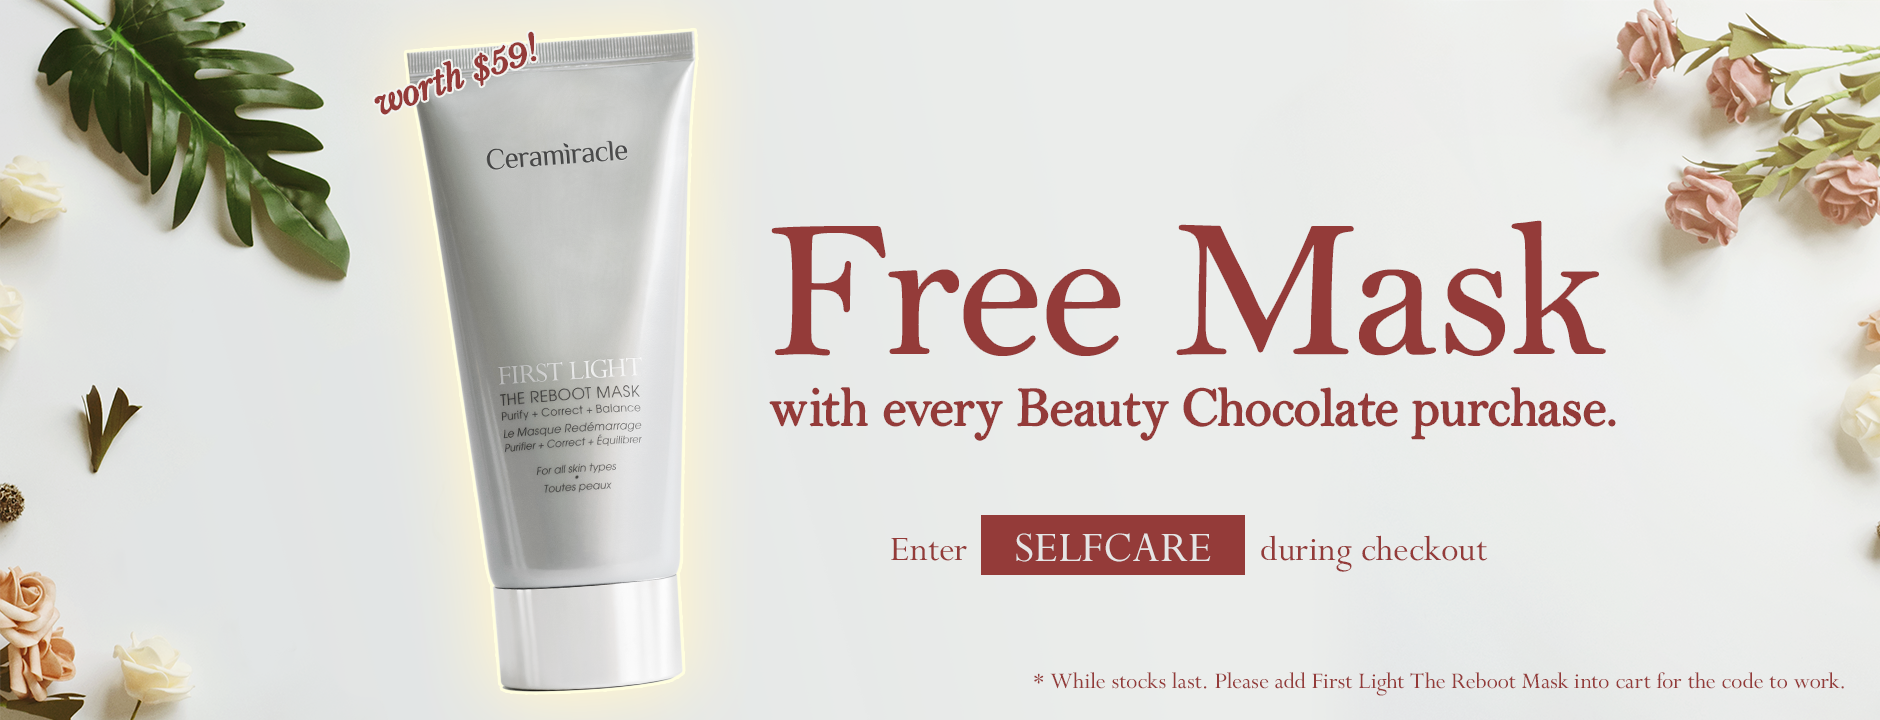 Free Mask with every Beauty Chocolate purchase